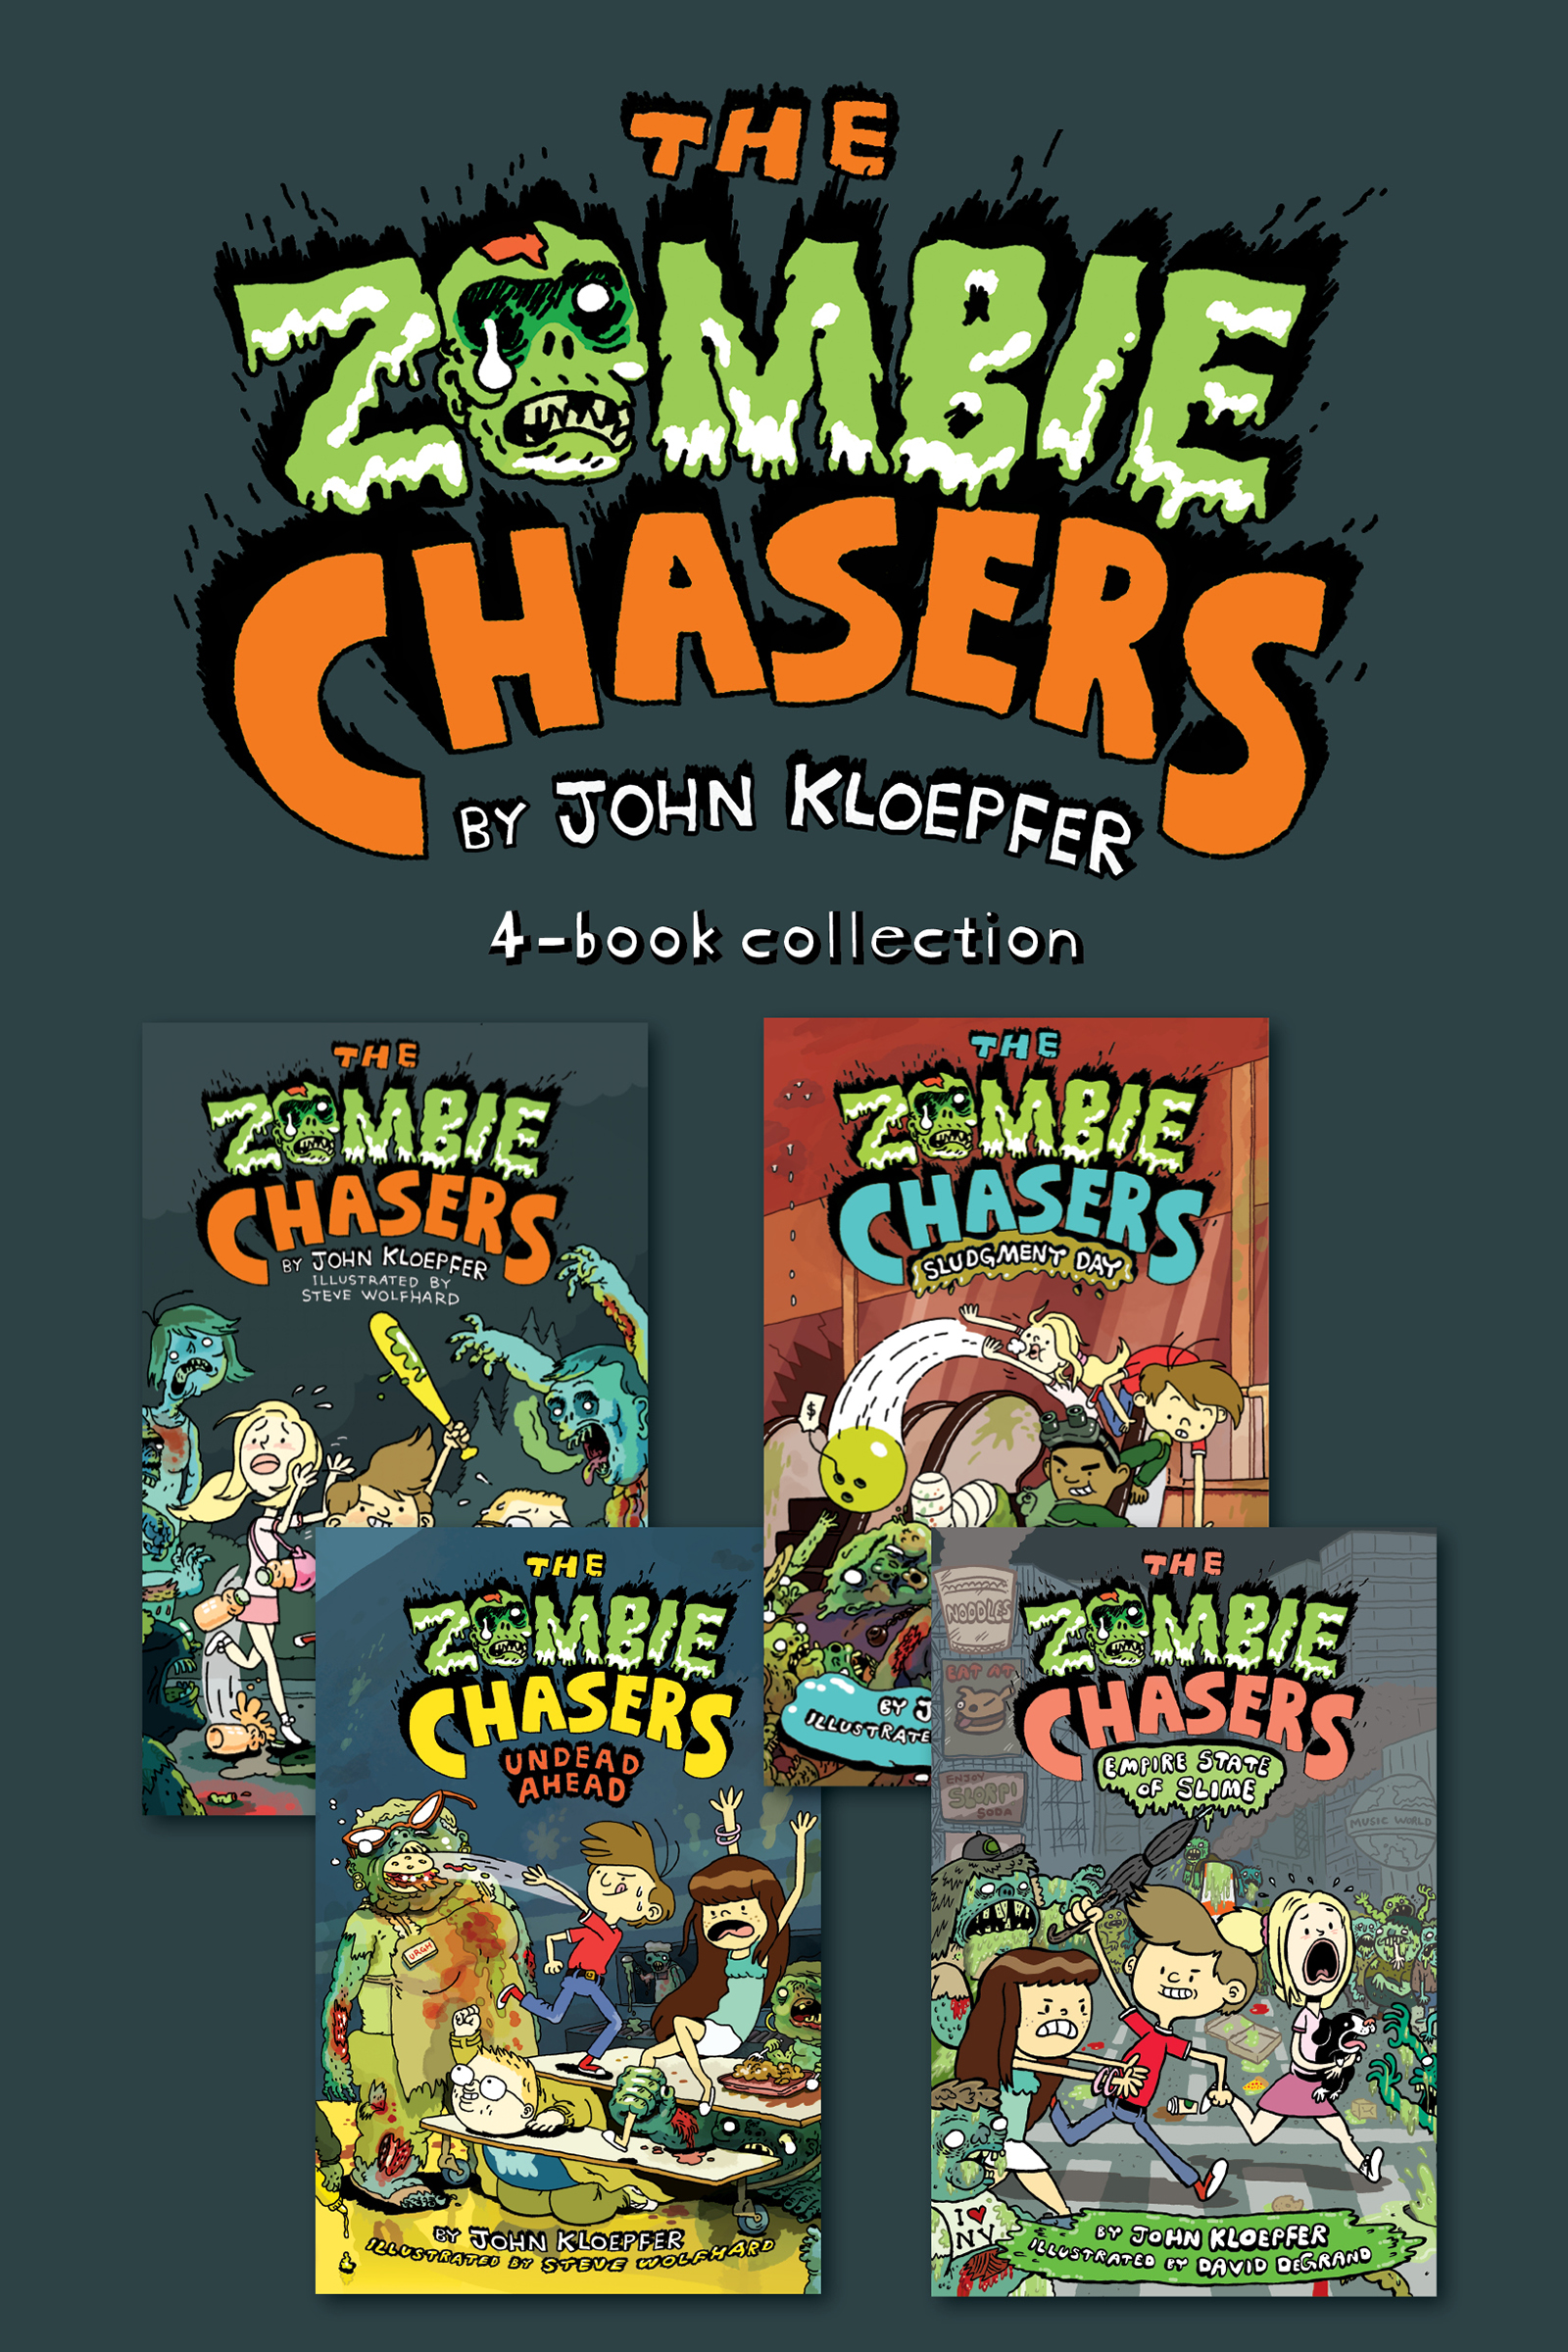 Zombie chasers 4-Book Collection The zombie chasers, undead a head, sludgment day, empire state of slime cover image